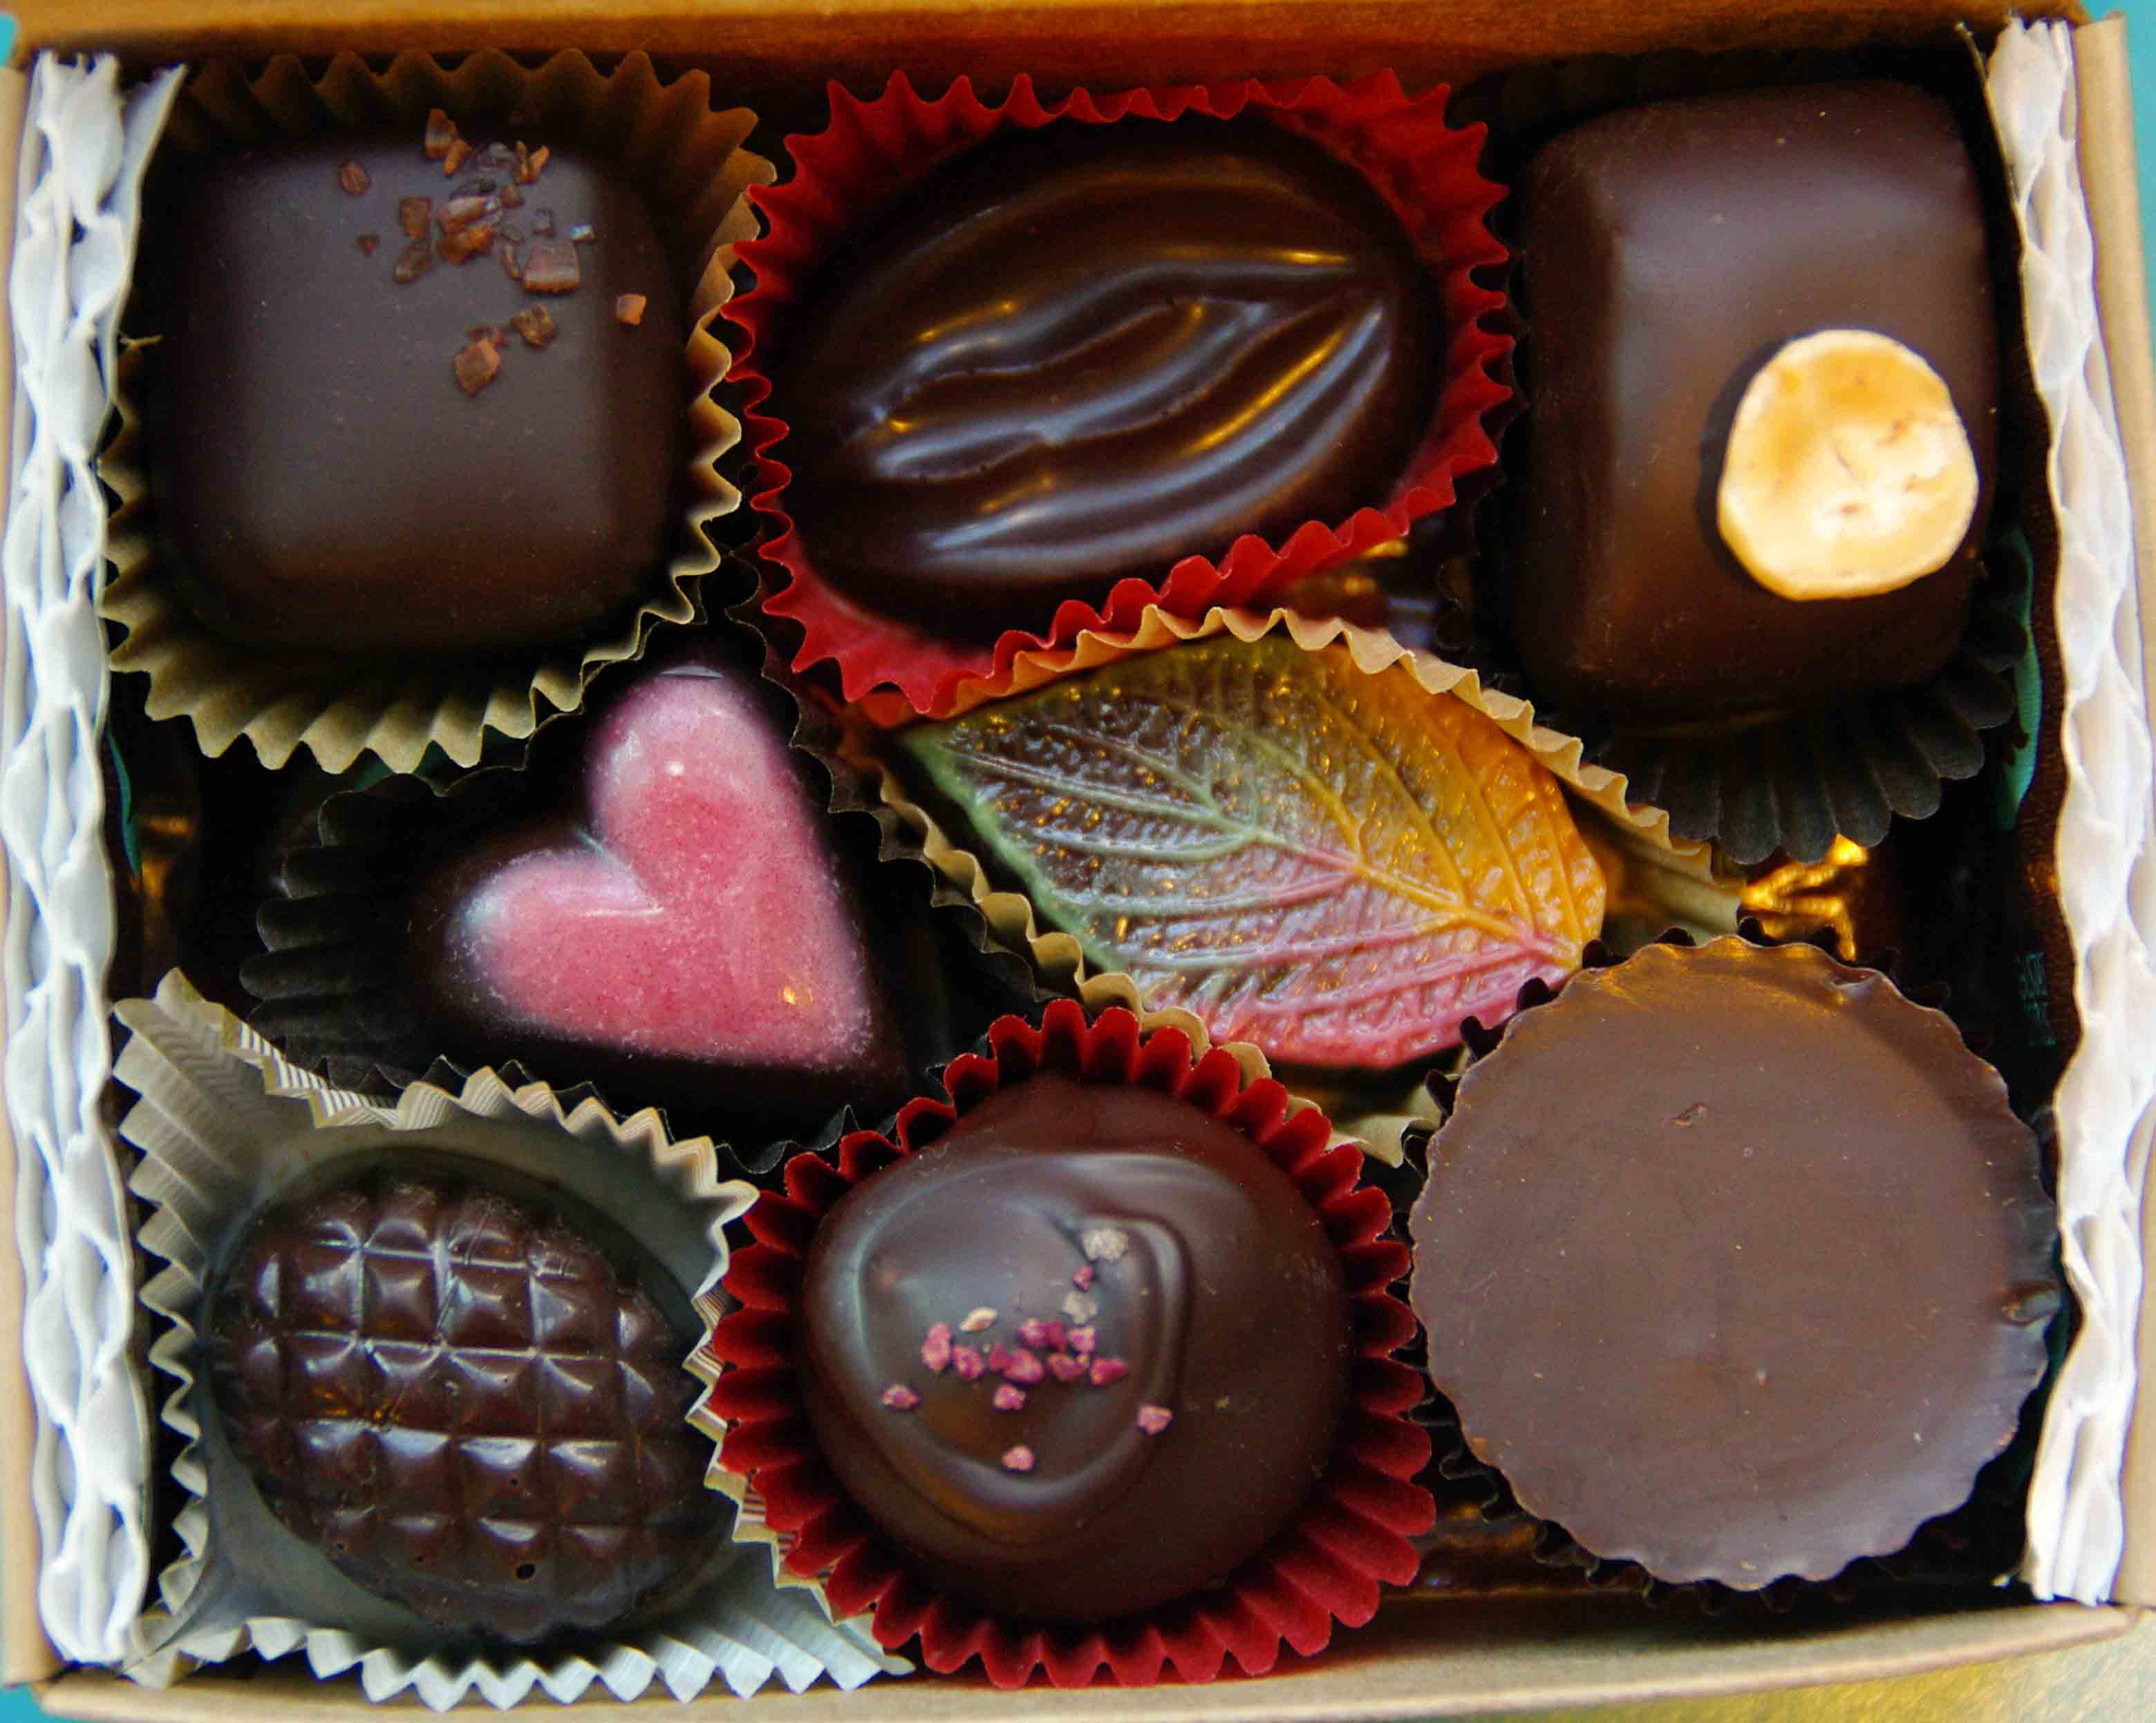 Lagusta's Chocolate Of The Month